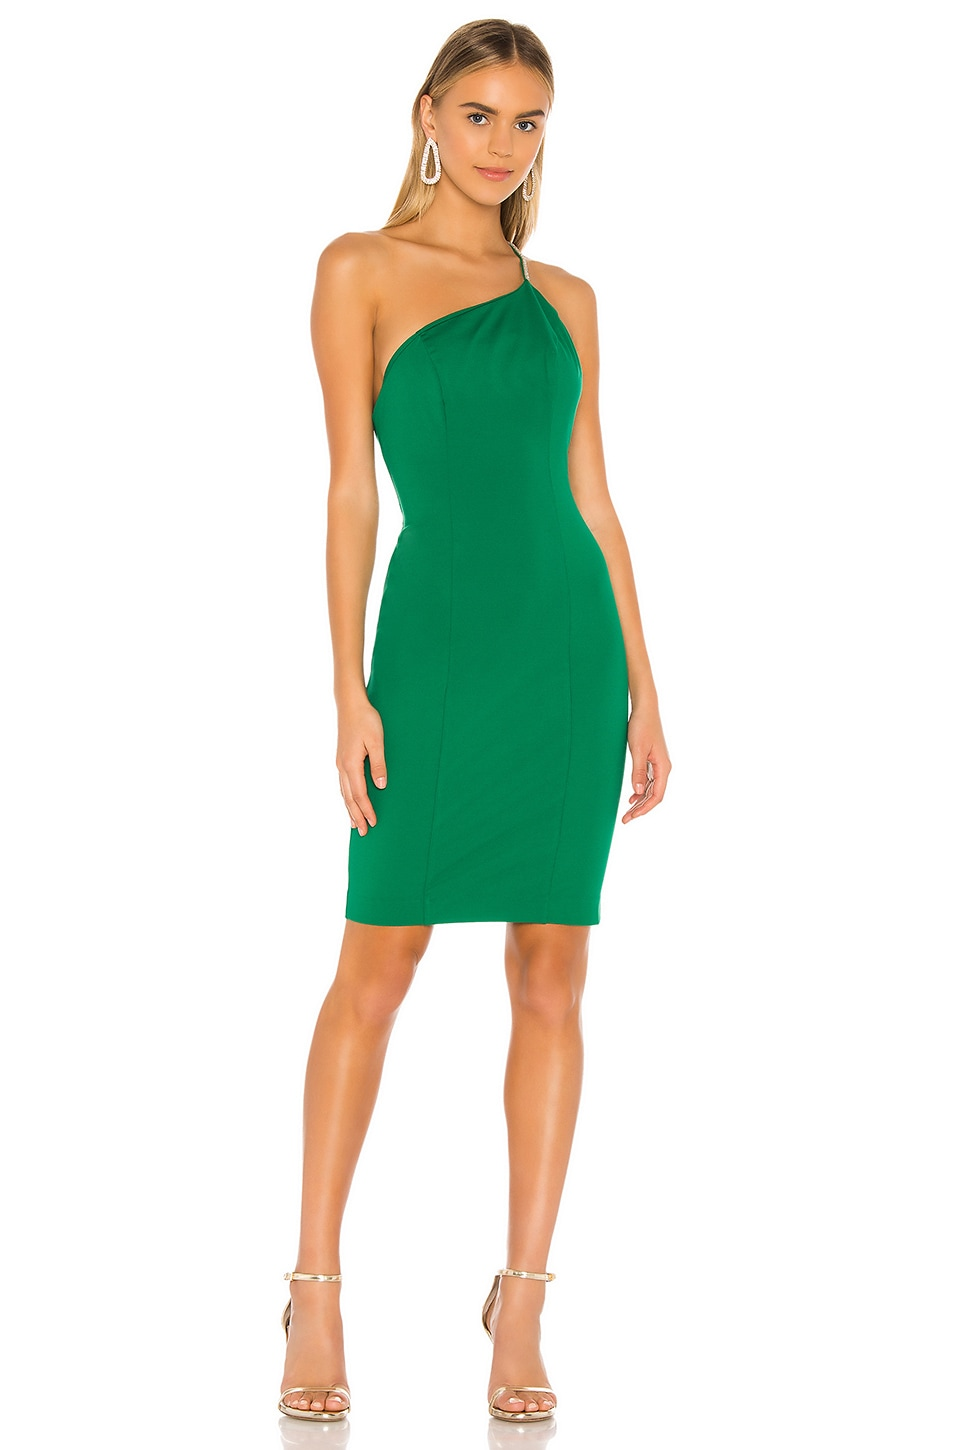 NBD Ciara Mini Dress in Kelly Green